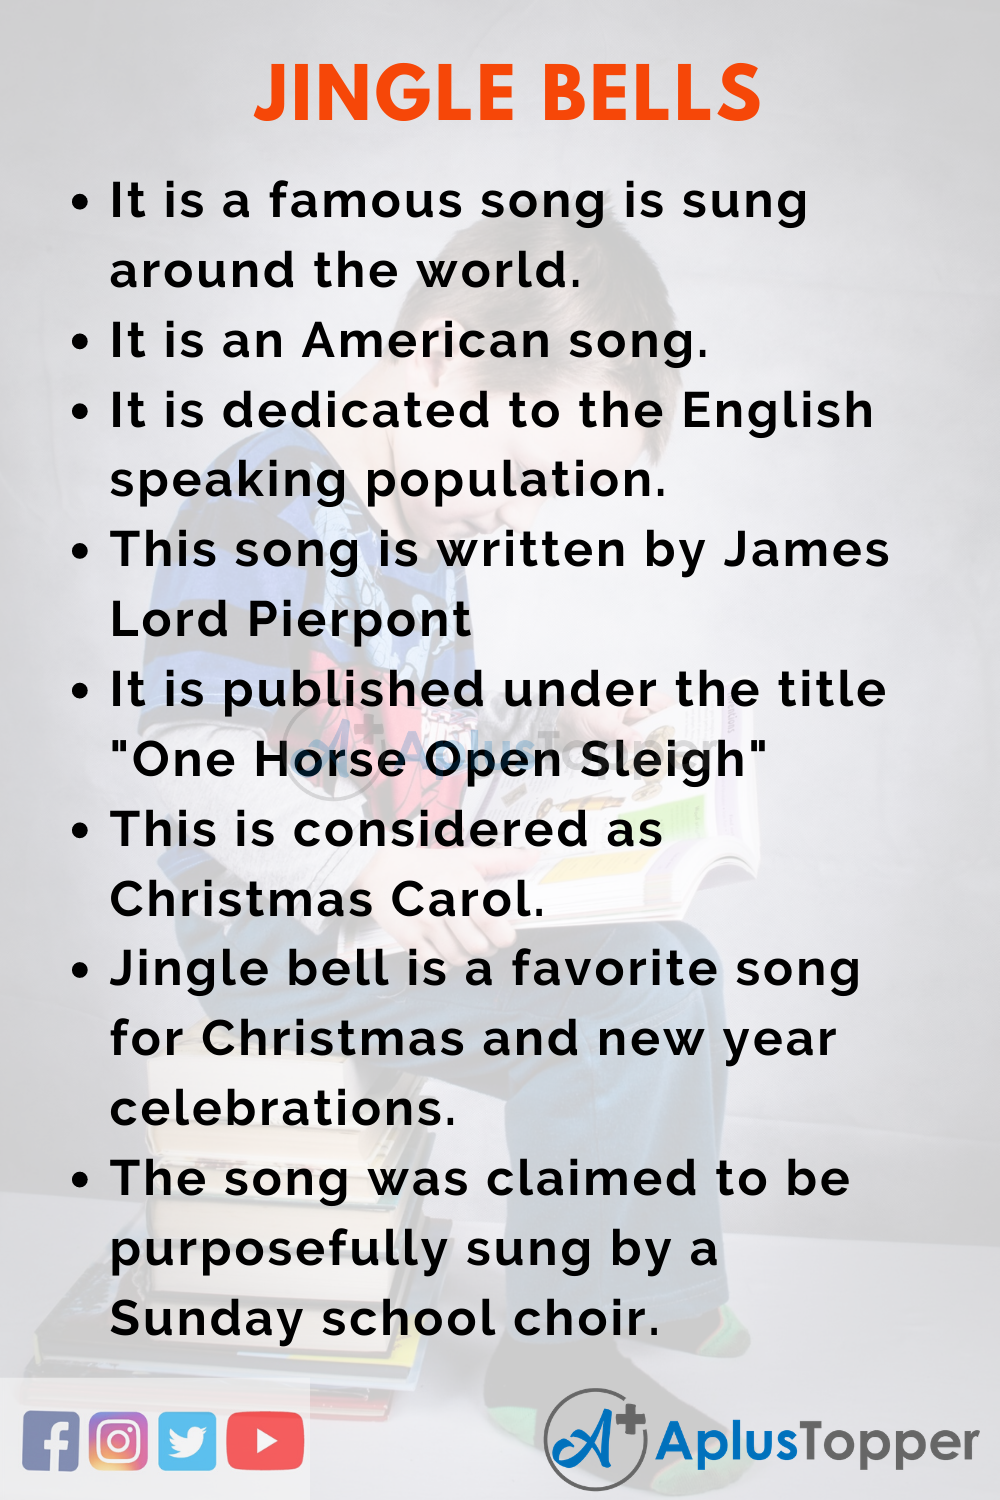 10 Lines on Jingle Bells for Higher Class Students